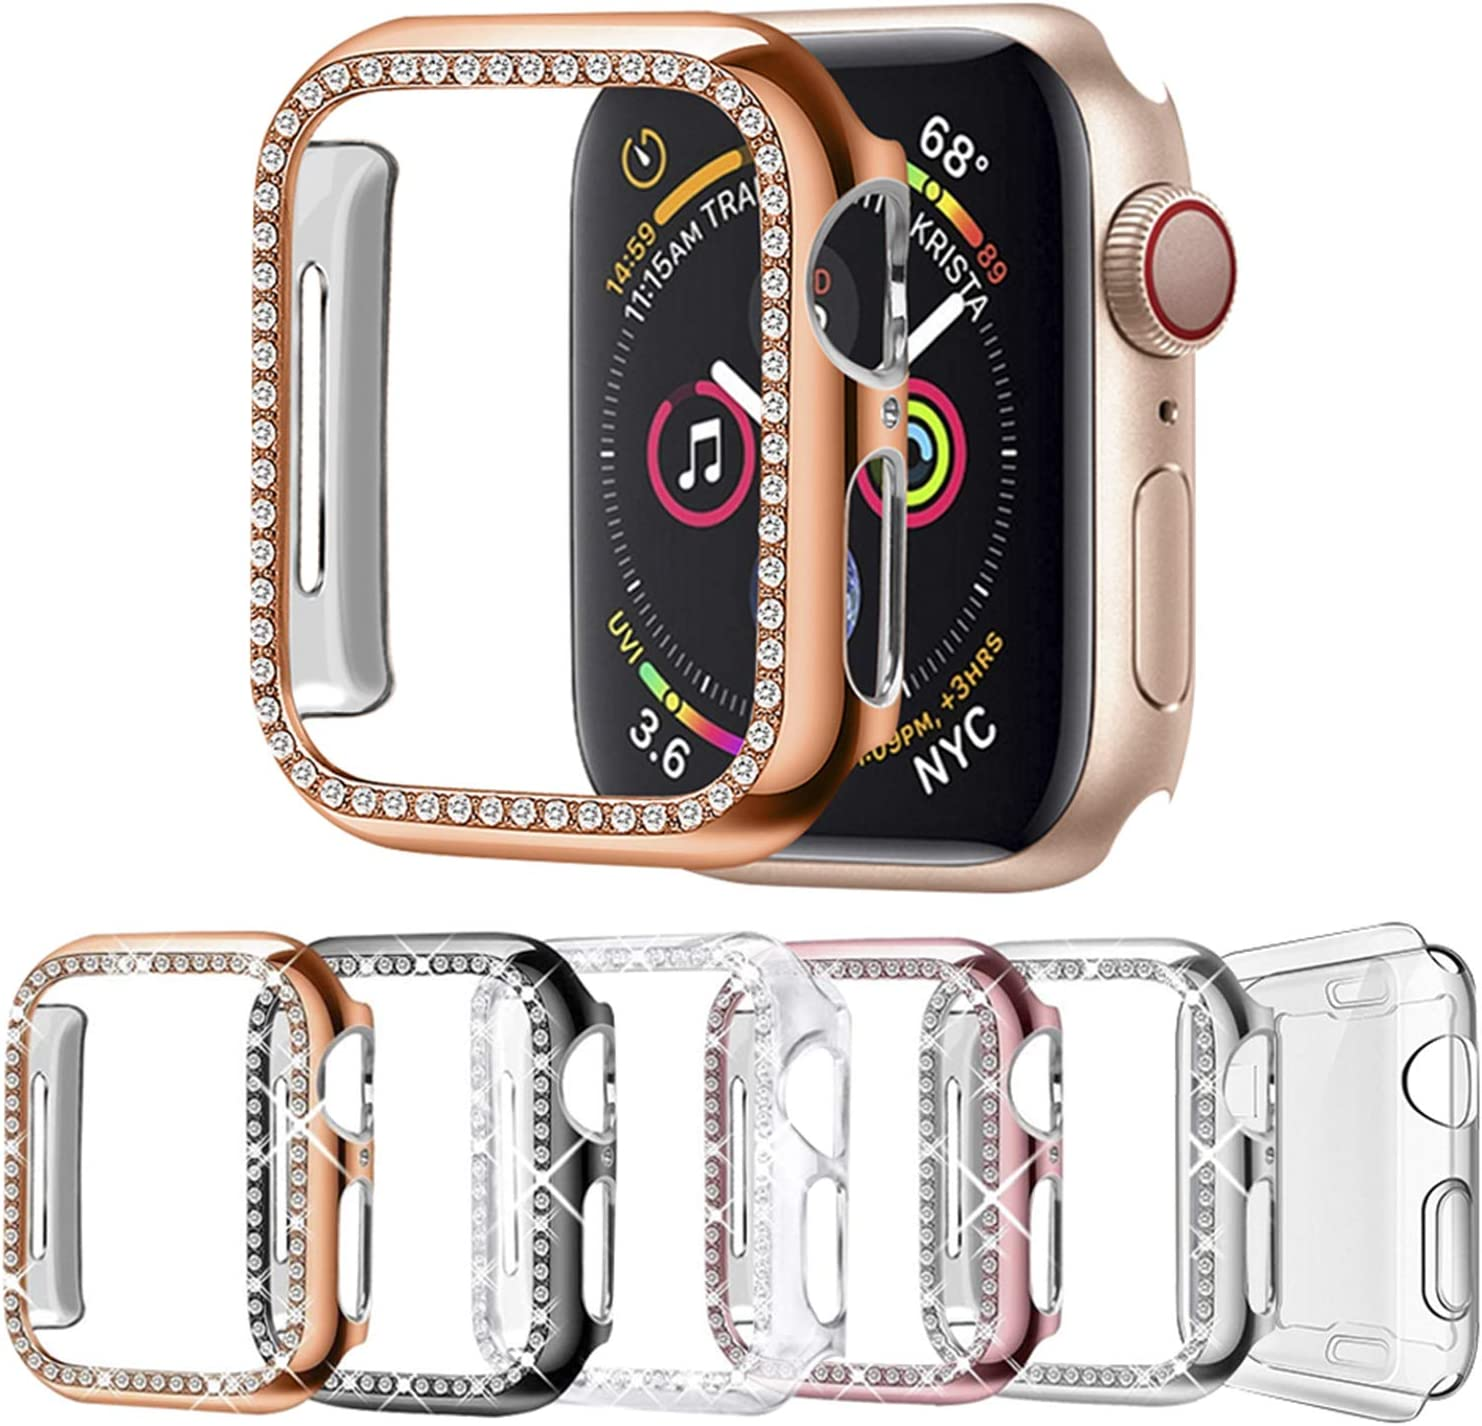 DSYTOM Case Compatible with Apple Watch 42mm, Bling PC Full Cover Bumper & TPU Soft Screen Protector Case for iWatch Series 3/2/1 Women Girl,(42MM,6 Pack)